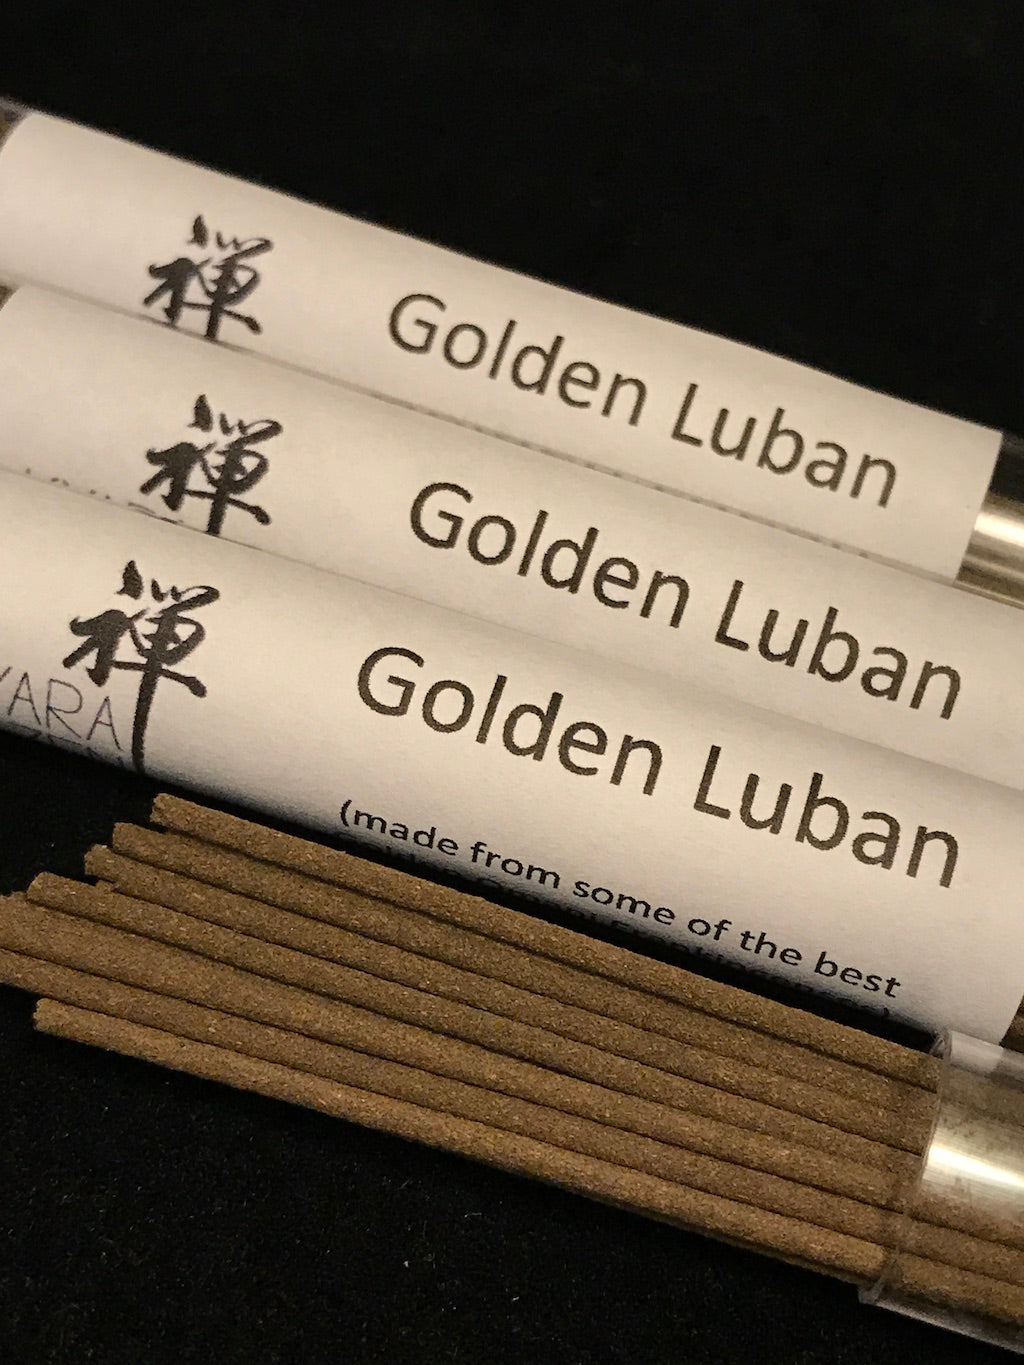 Golden Luban